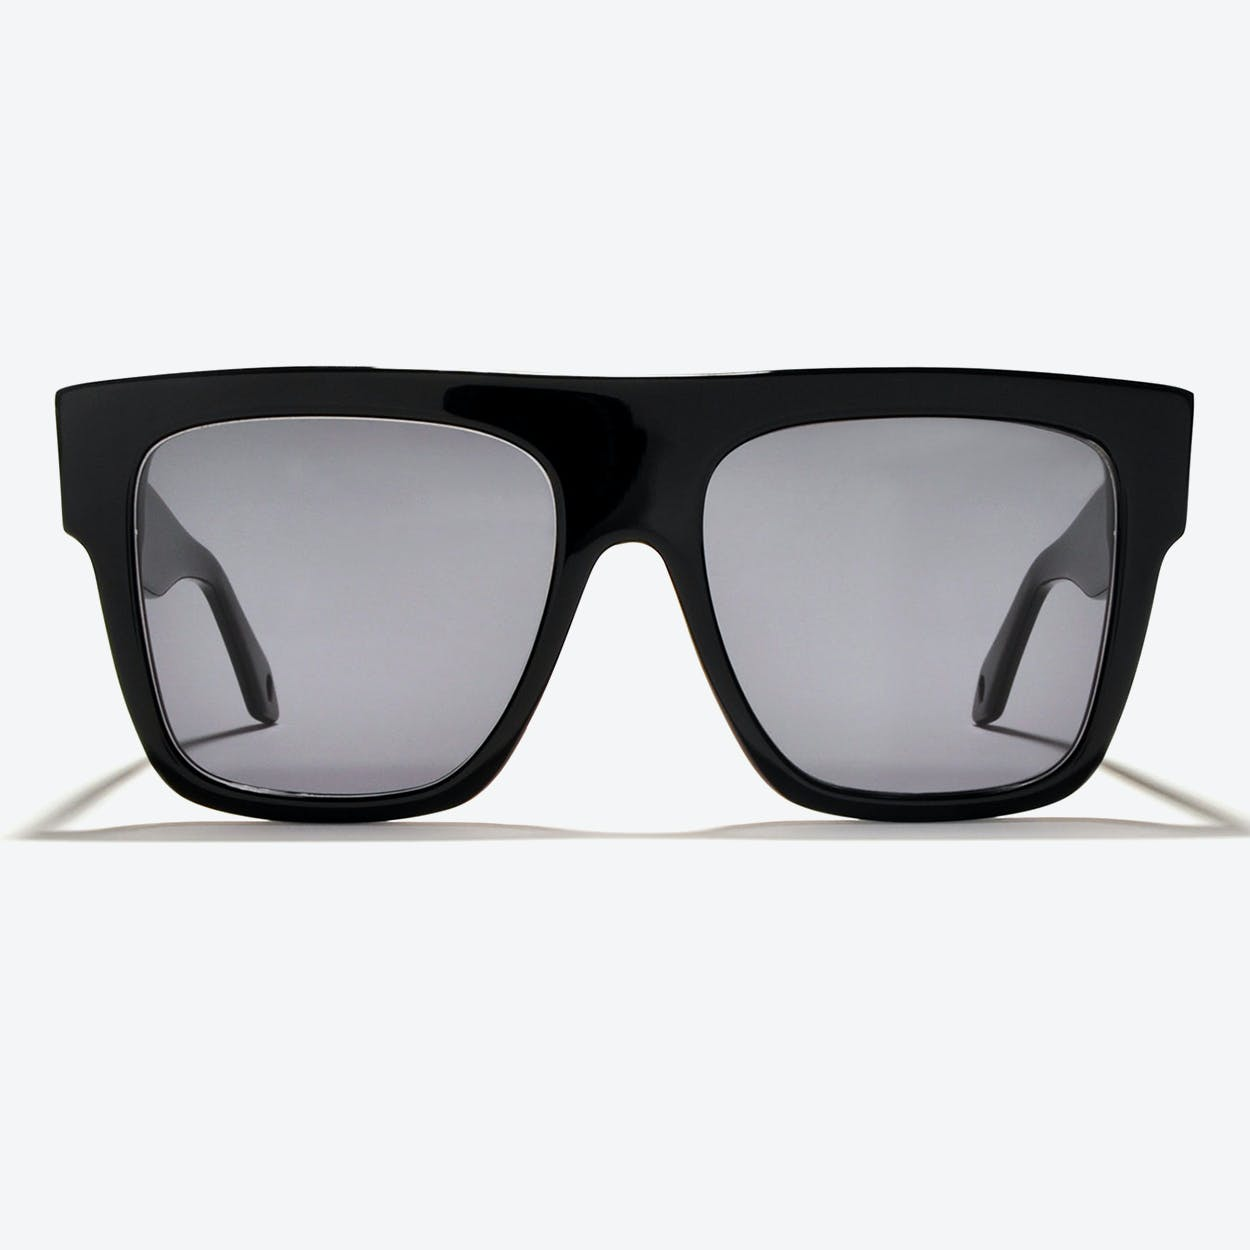 Proteus Sunglasses in Black